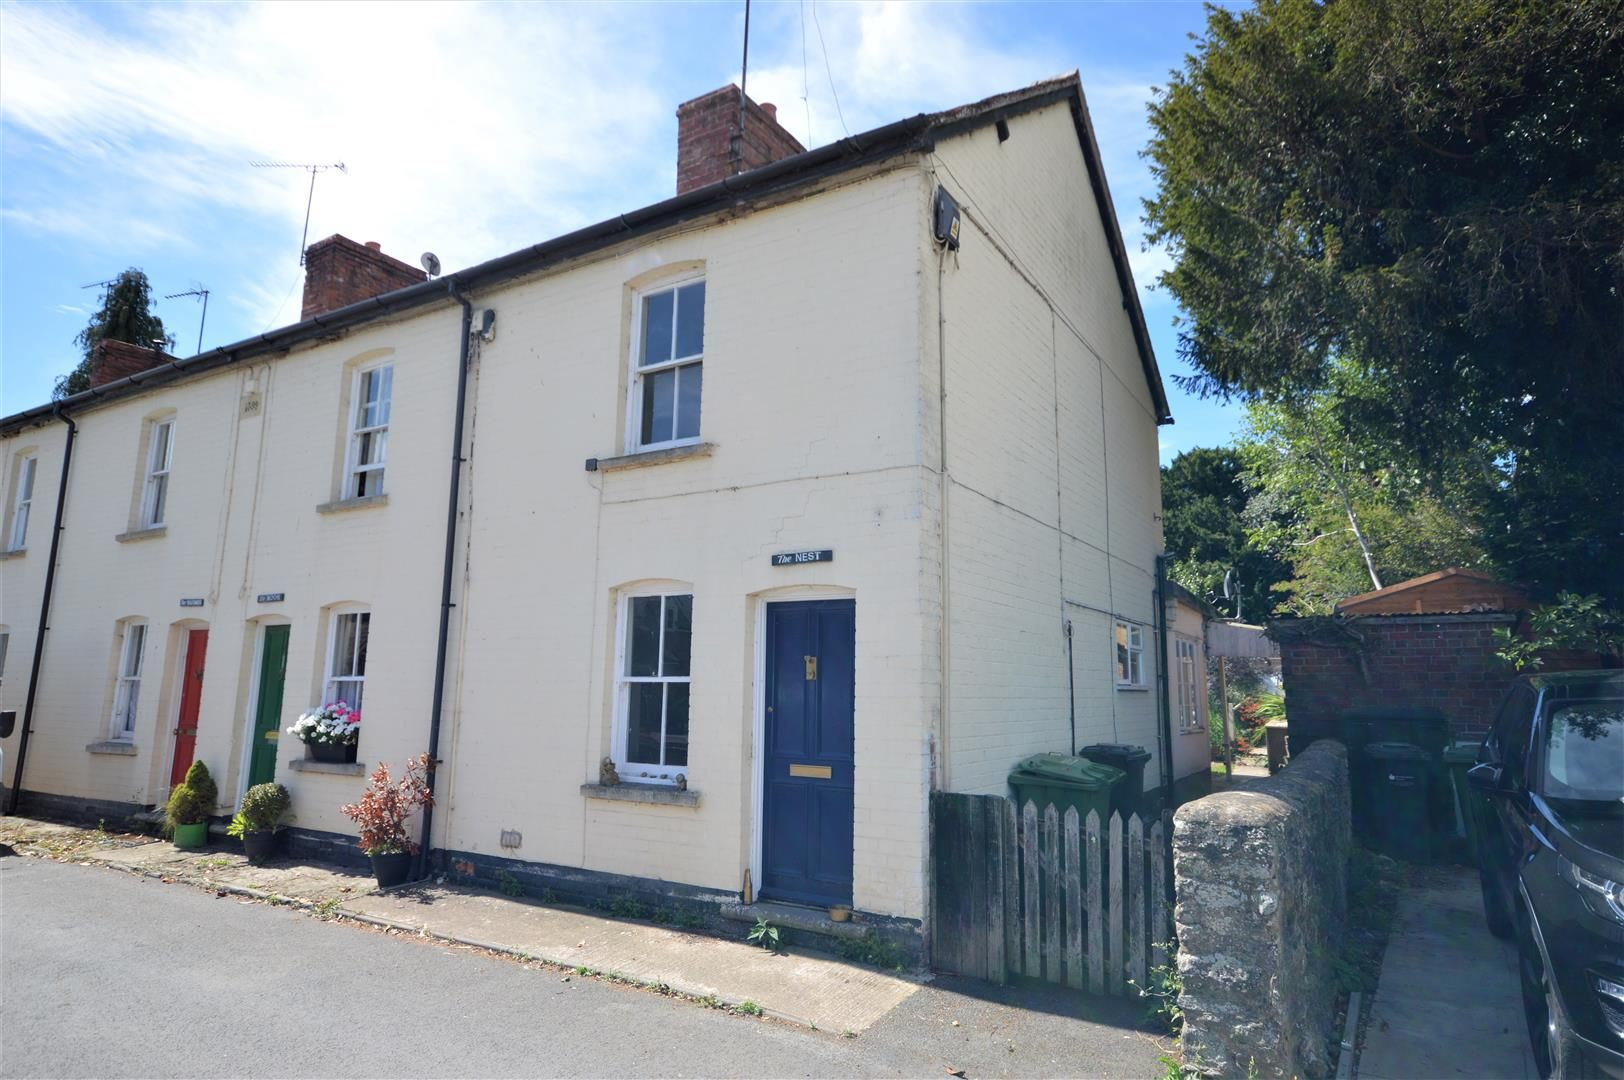 2 bed end of terrace for sale in Eardisland - Property Image 1